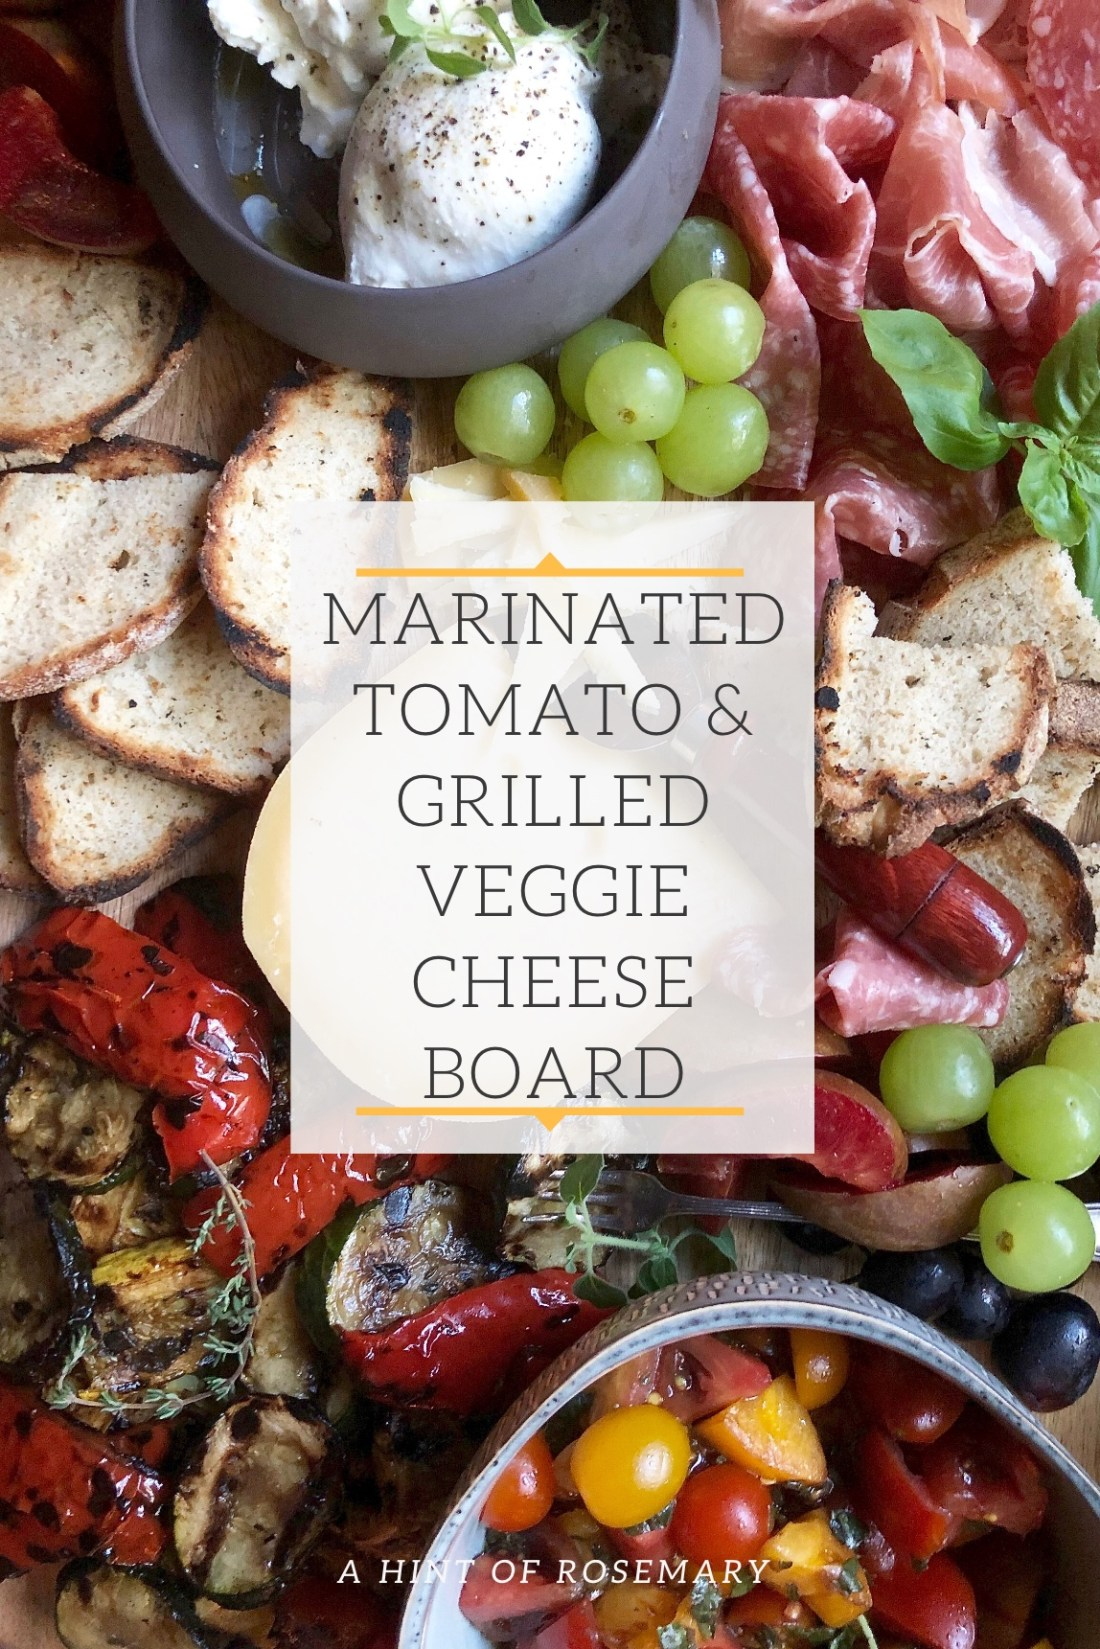 marinated tomato & grilled veggie cheese board